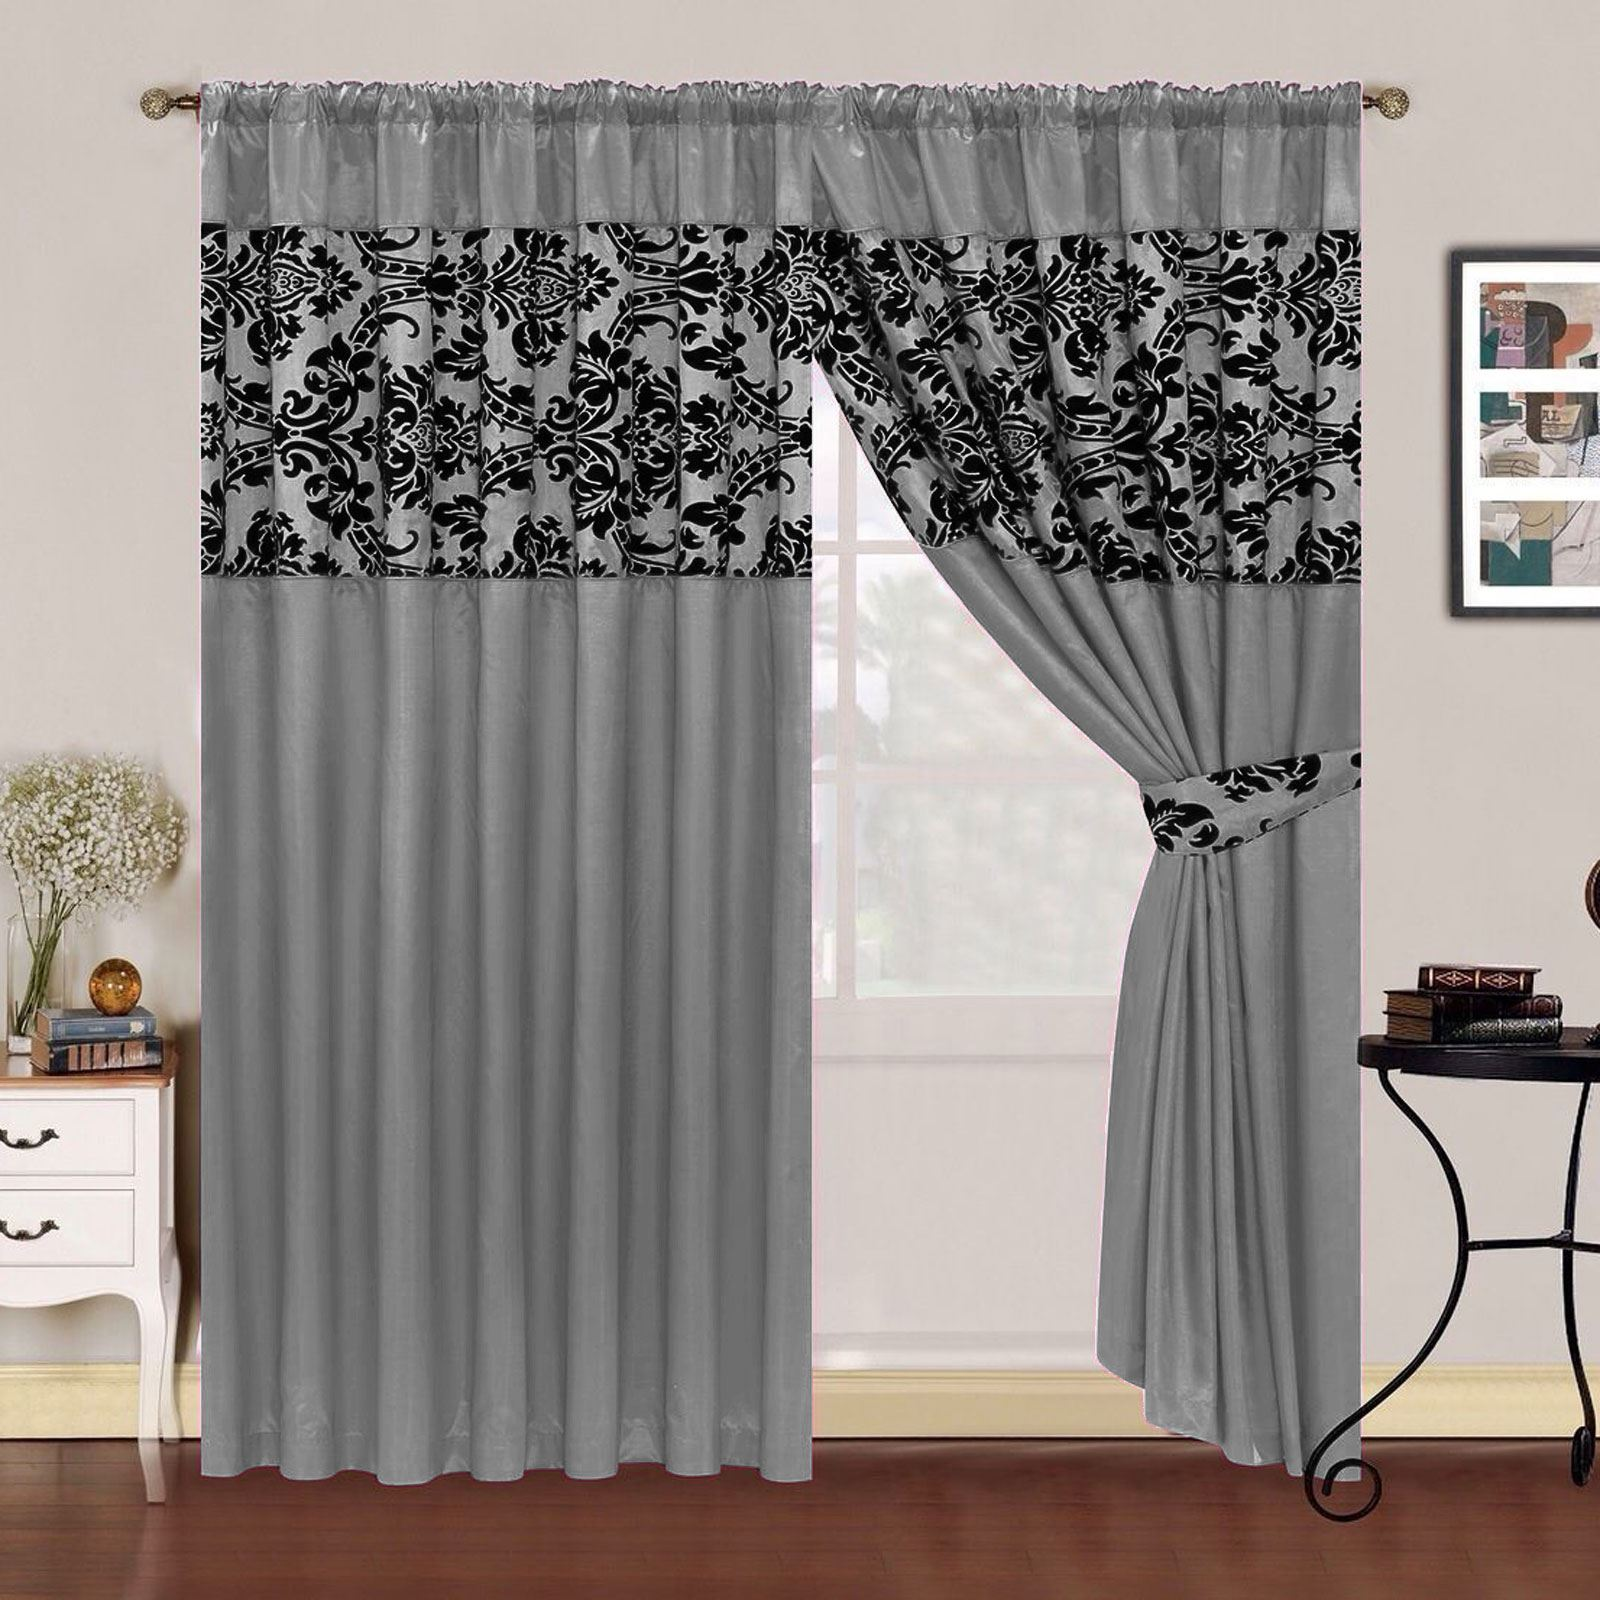 Imperial lisa curtains fully lined half flock damask for Living room curtains 90x90